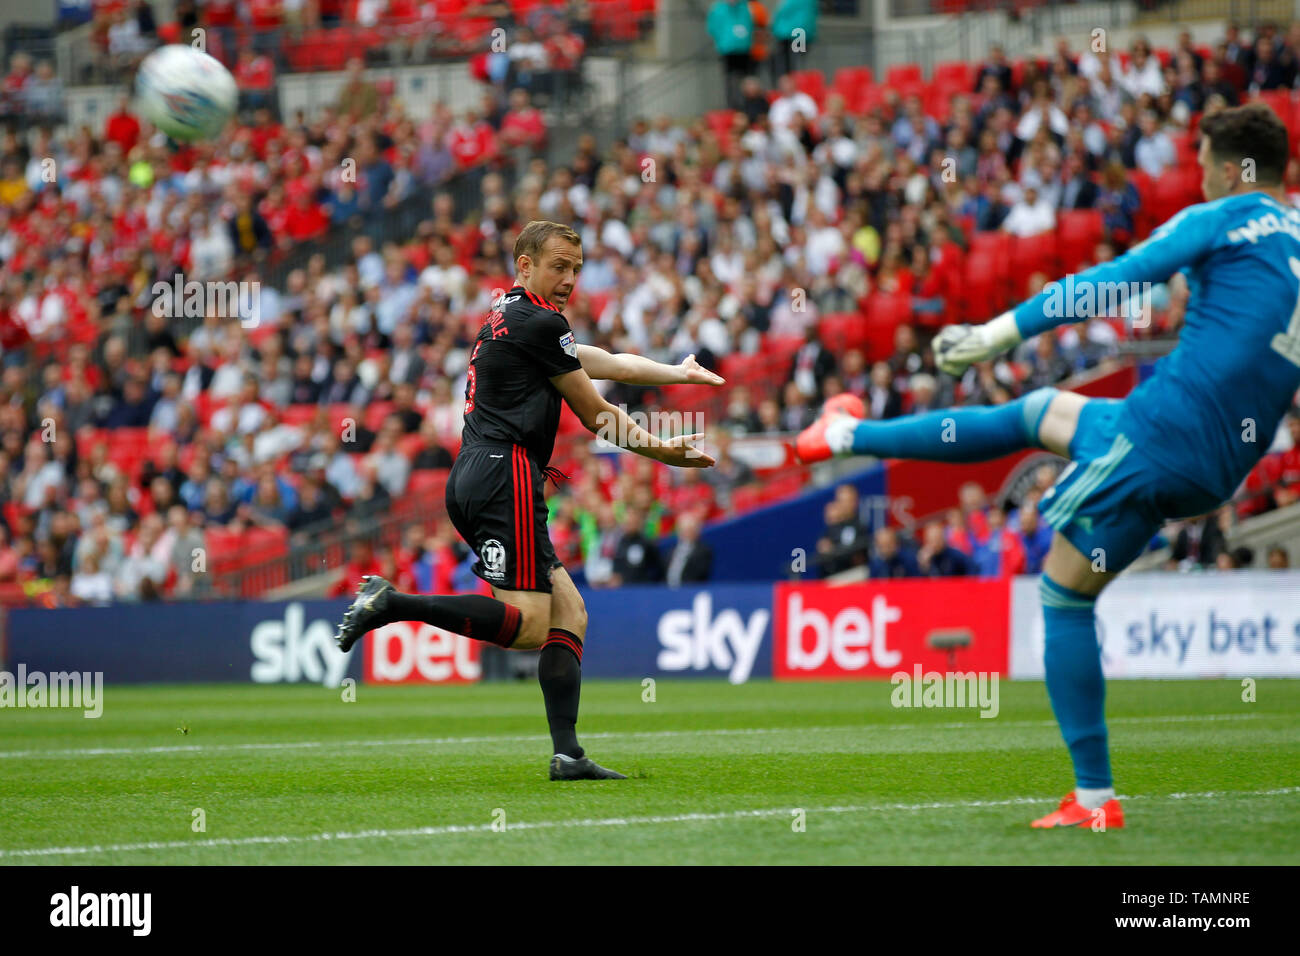 Lee Cattermole of Sunderland looks for the pass during the